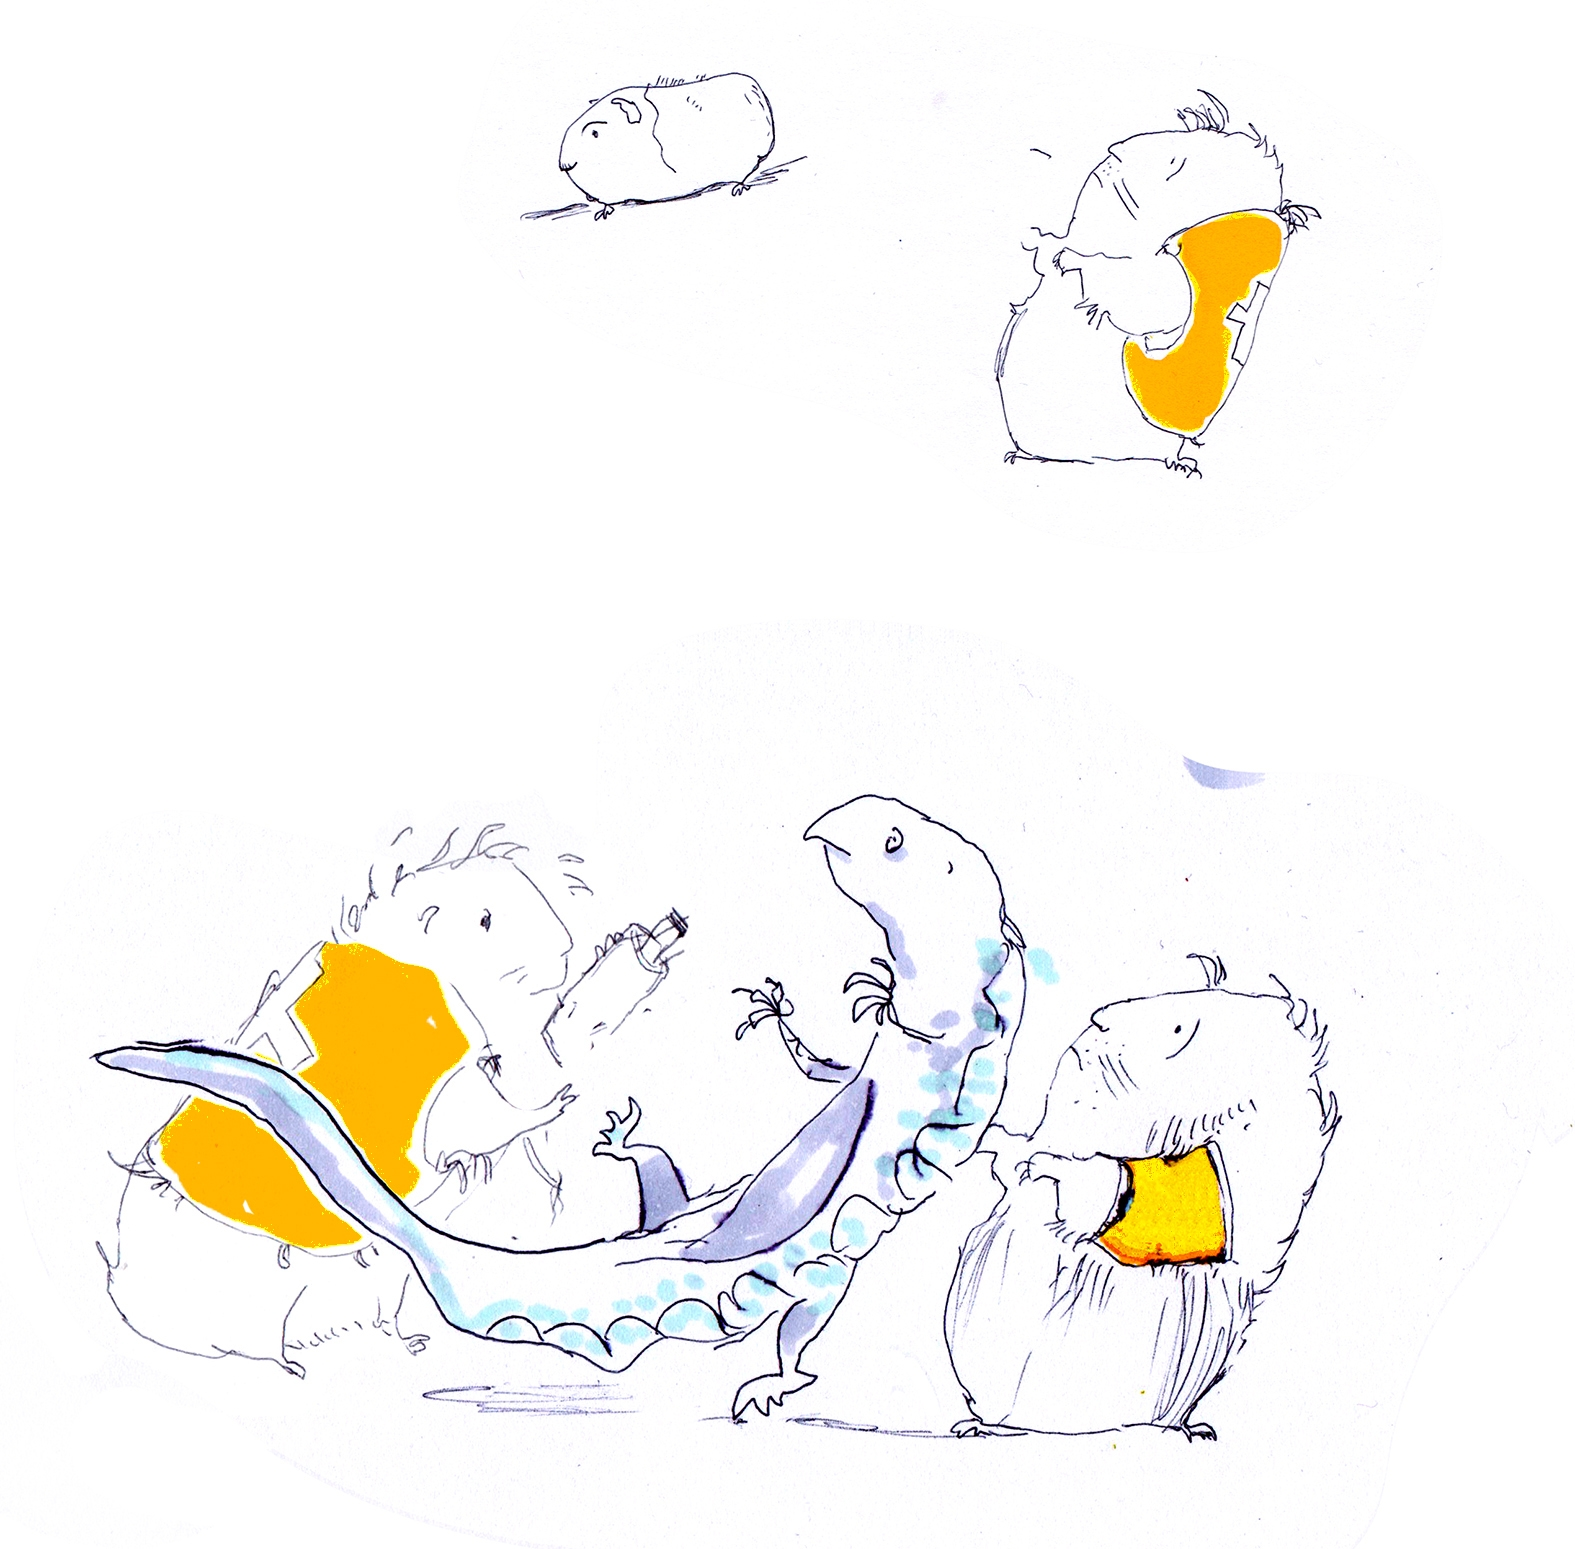 sketch foe Bill and the guinea pigs where the guinea pigs are wearing anbulance hi-viz jackets